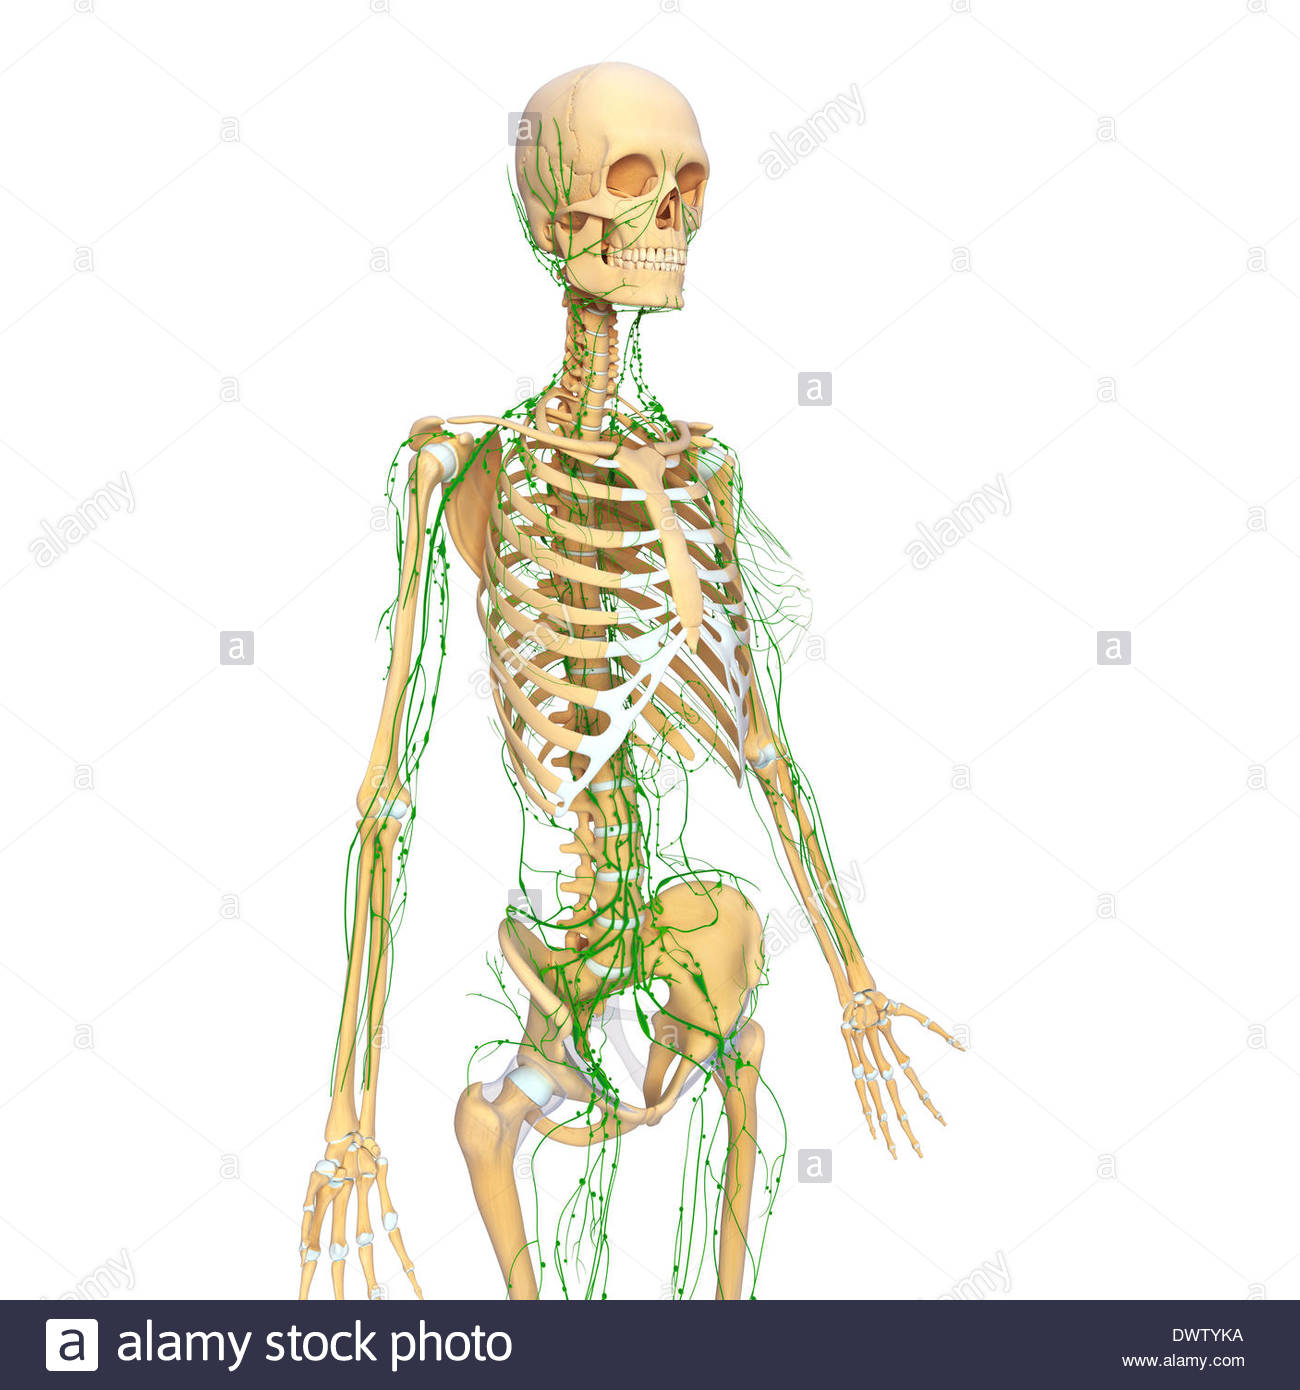 1300x1390 Lymphatic System Drawing Stock Photo 67546062